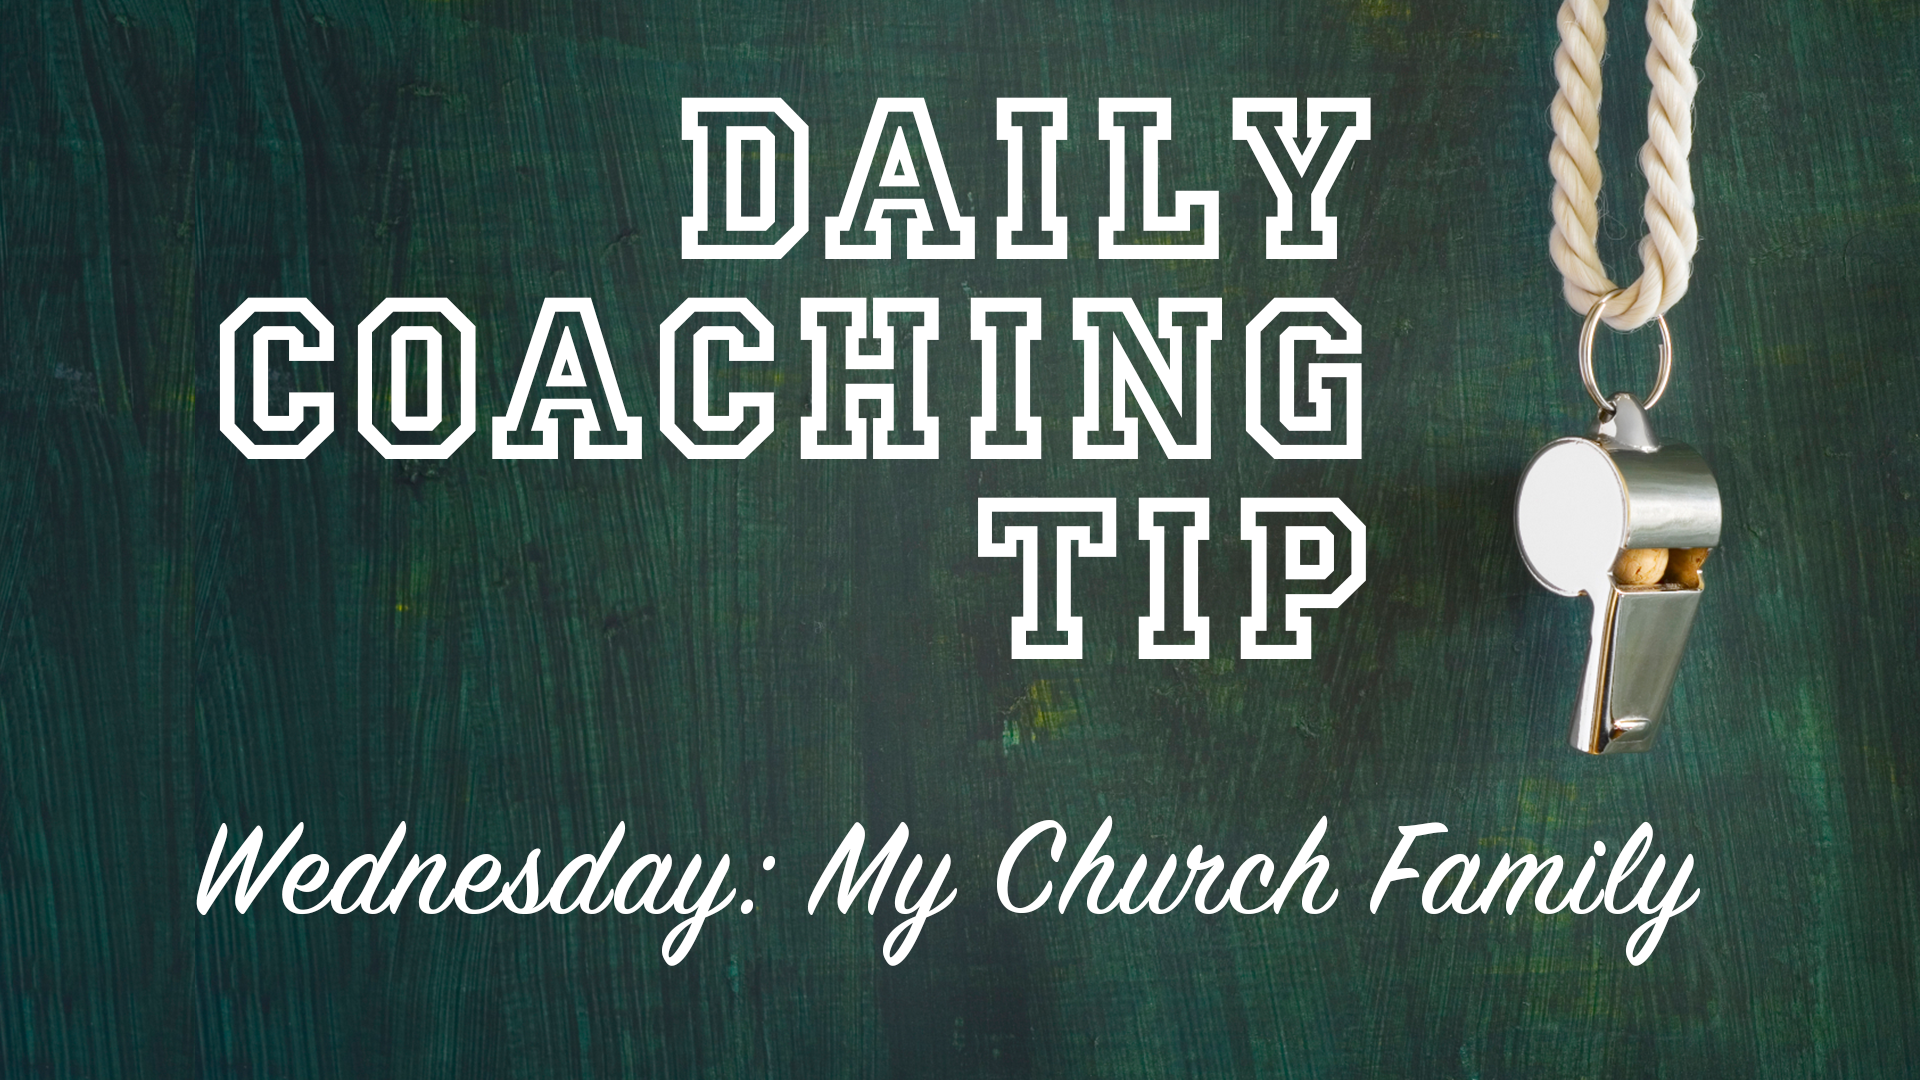 Daily Coaching Tip, Wednesday, July 13, 2016